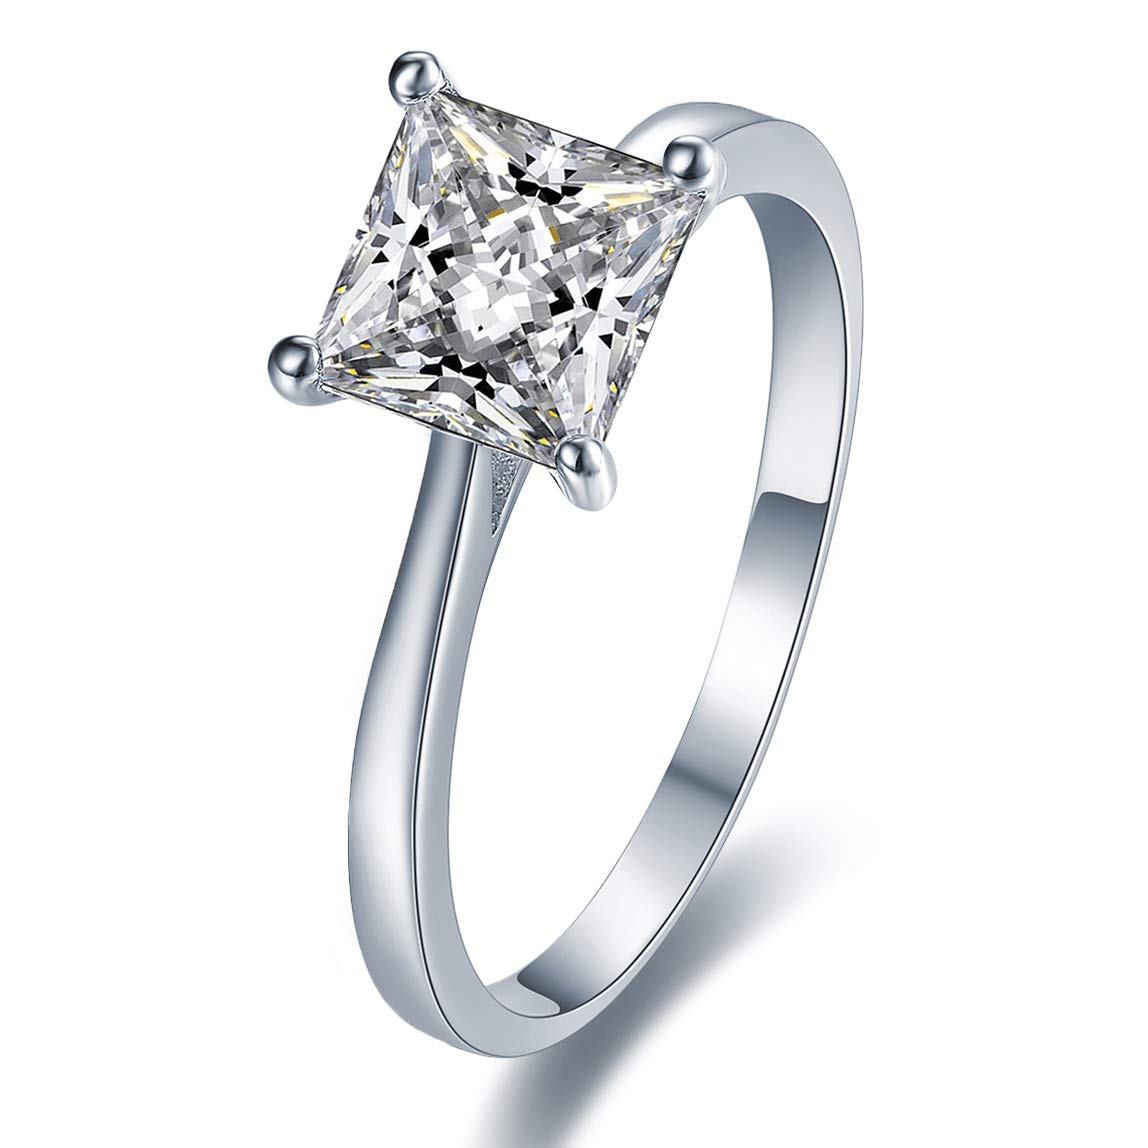 Sizes J to Q available 925 Silver 2mm Claw Set CZ Solitaire Ring Gift Boxed